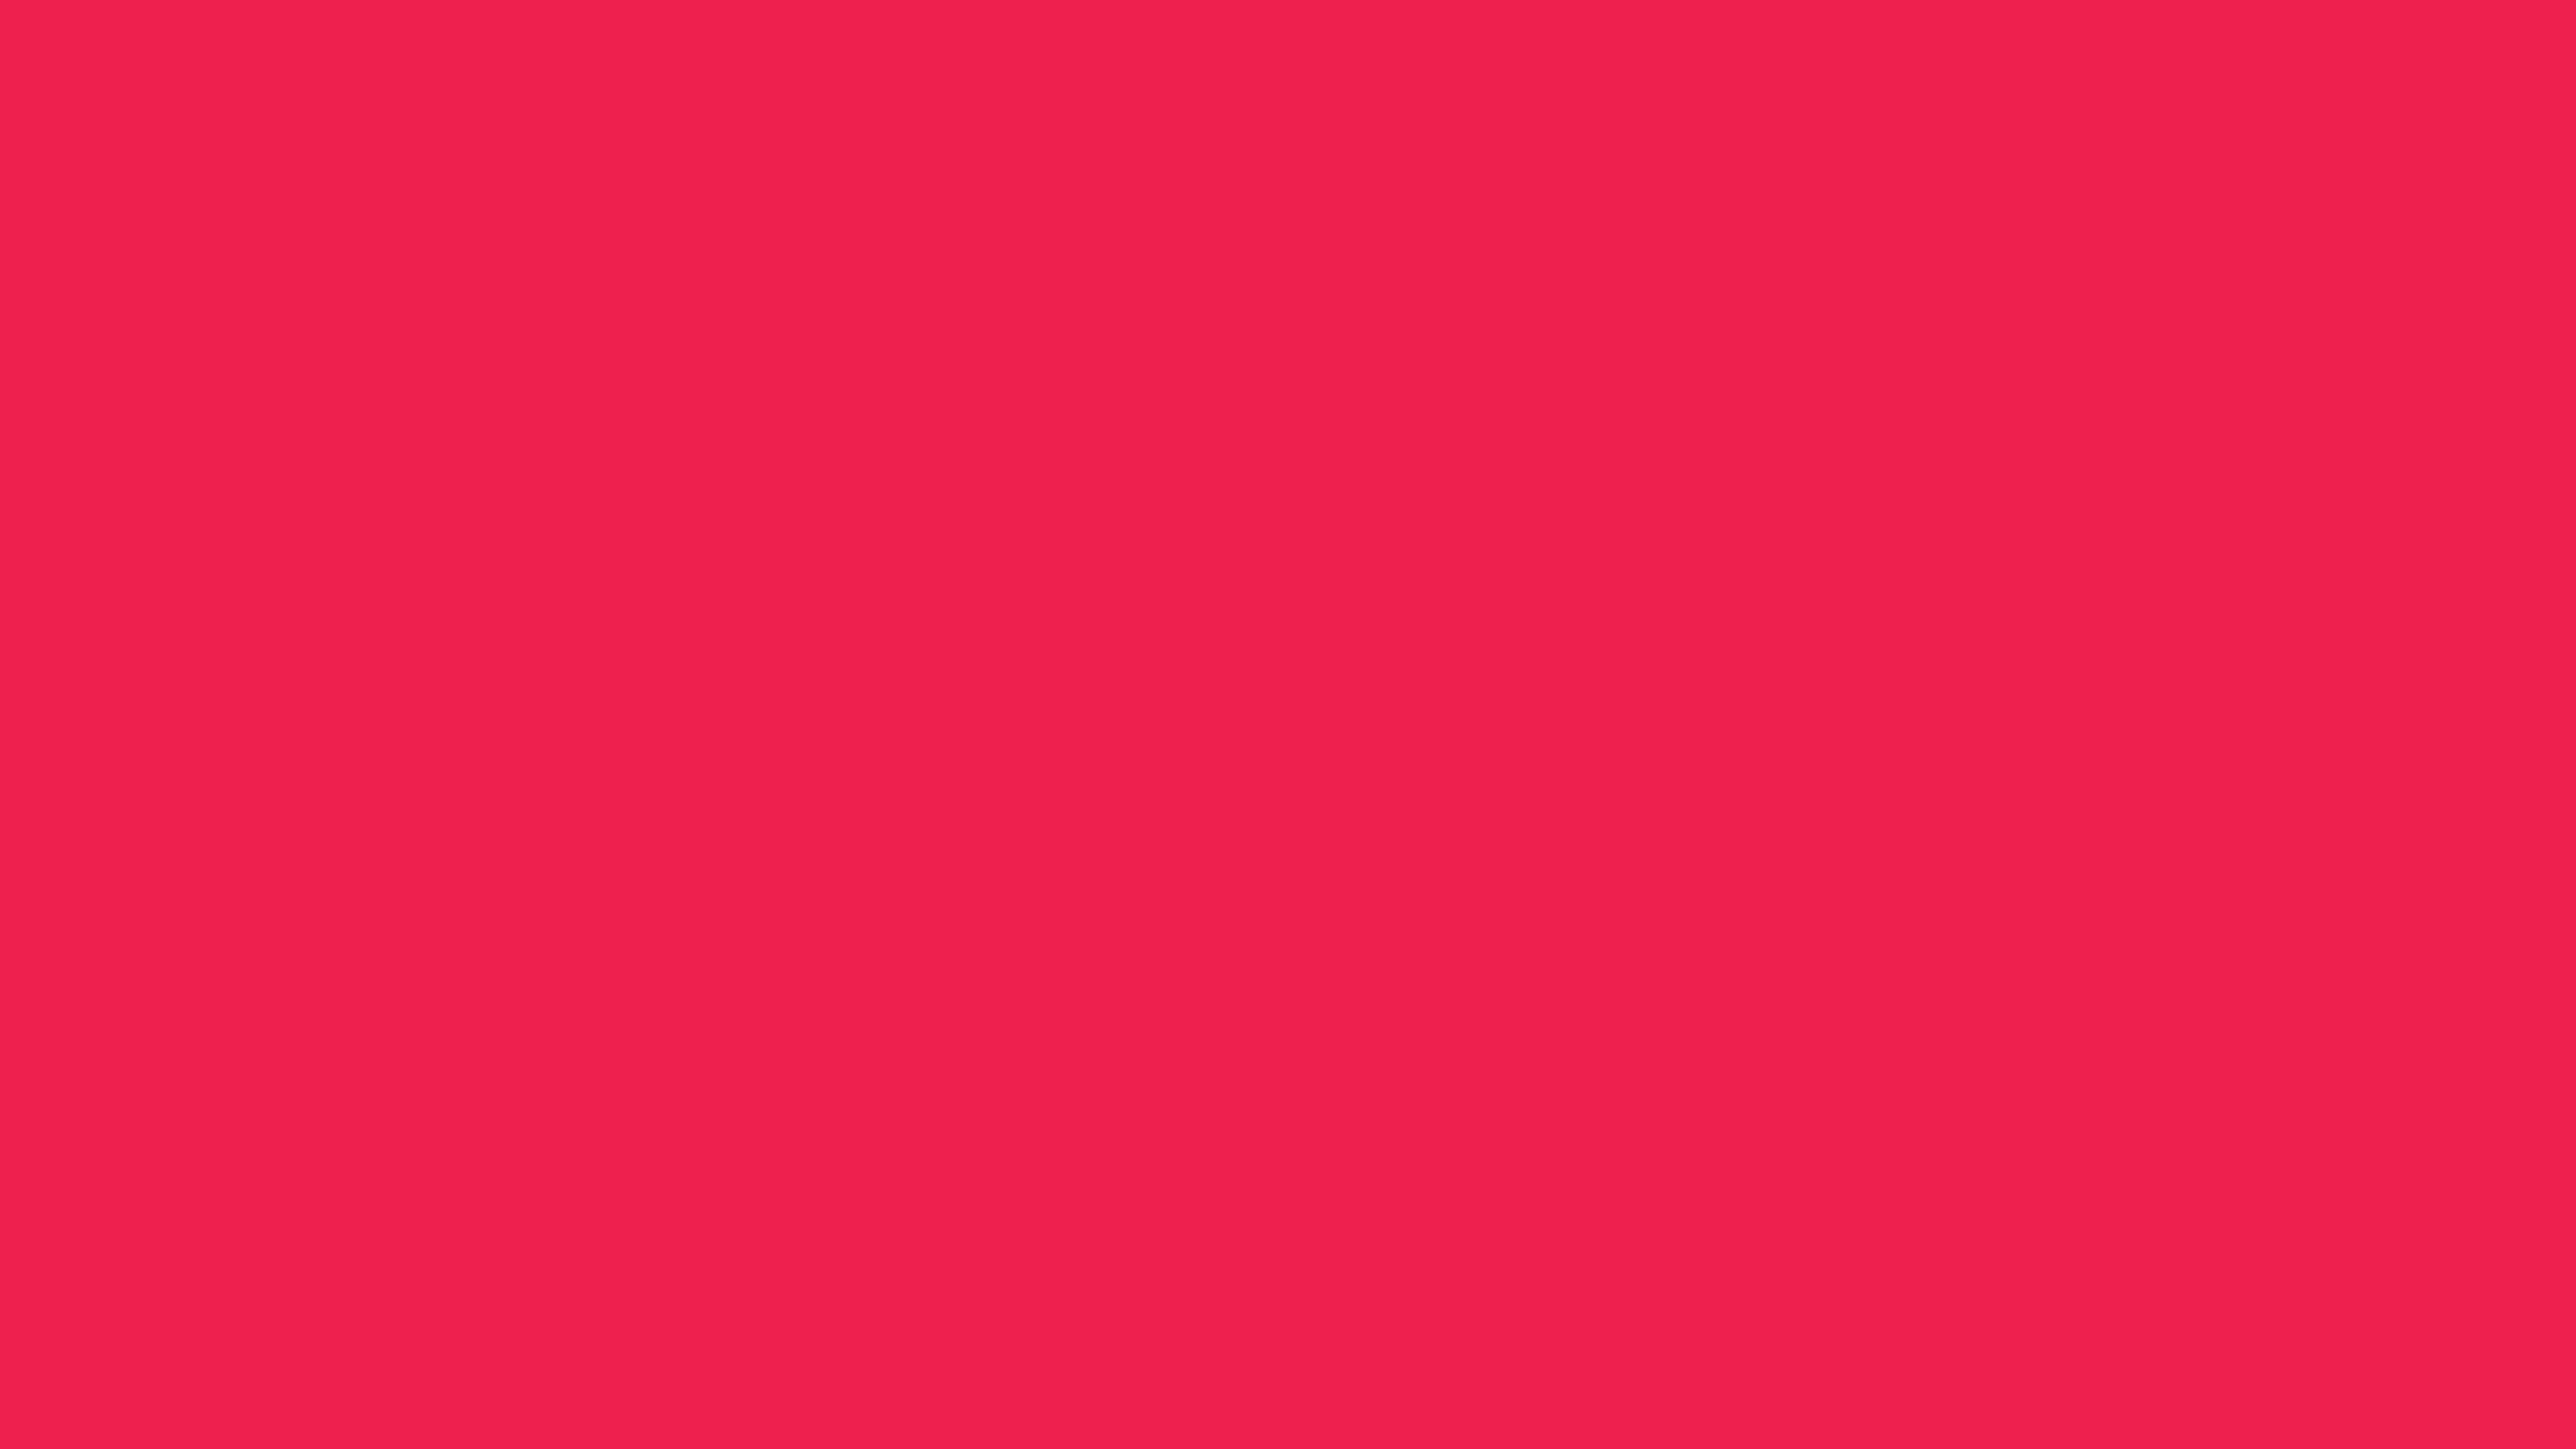 4096x2304 Red Crayola Solid Color Background